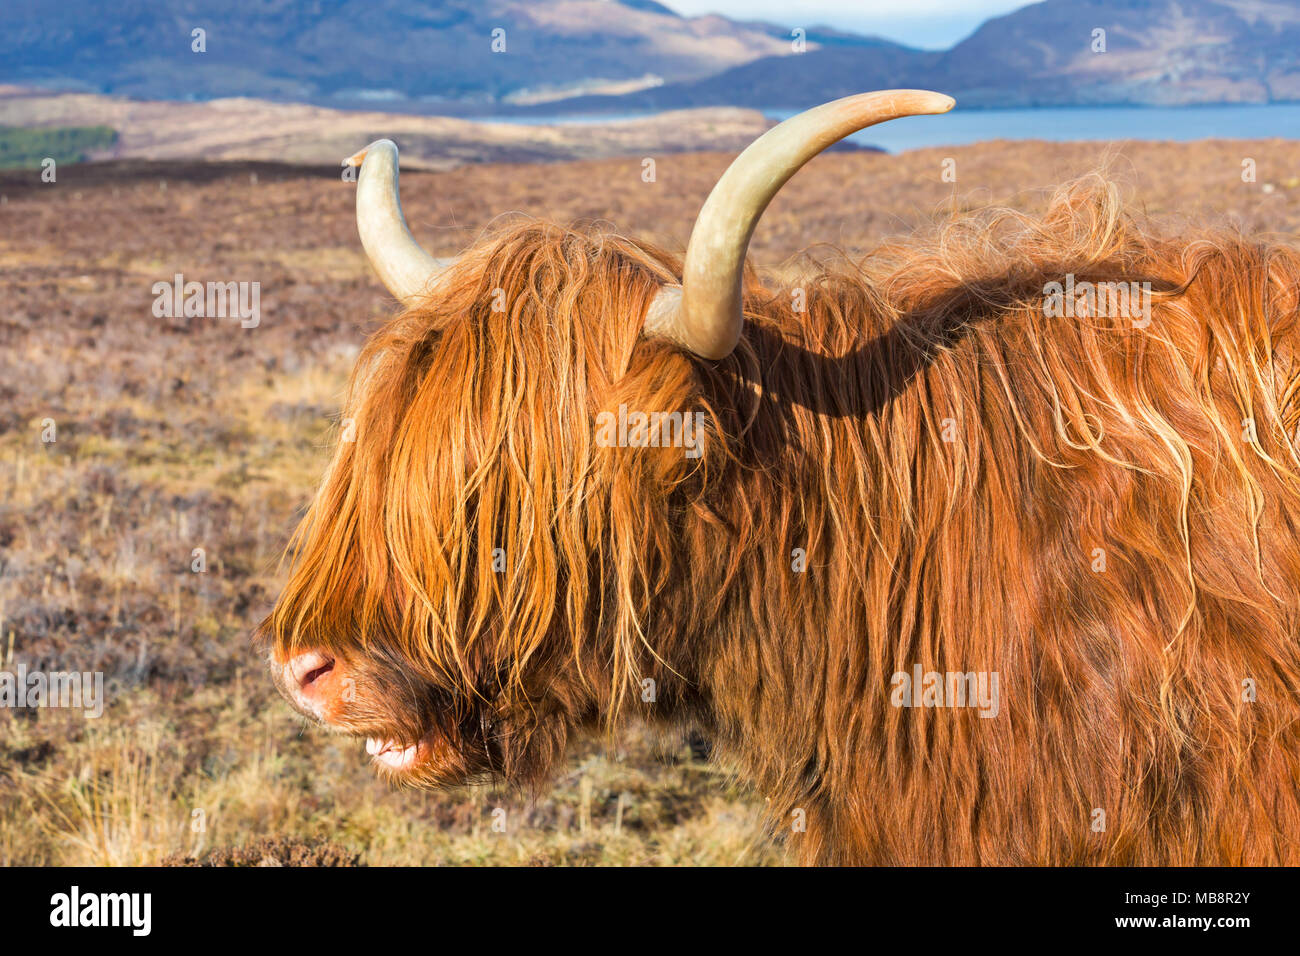 Highland cattle cow in landscape on Isle of Skye near Elgol, Scotland, UK in March - highland cattle showing teeth smiling laughing - Stock Image